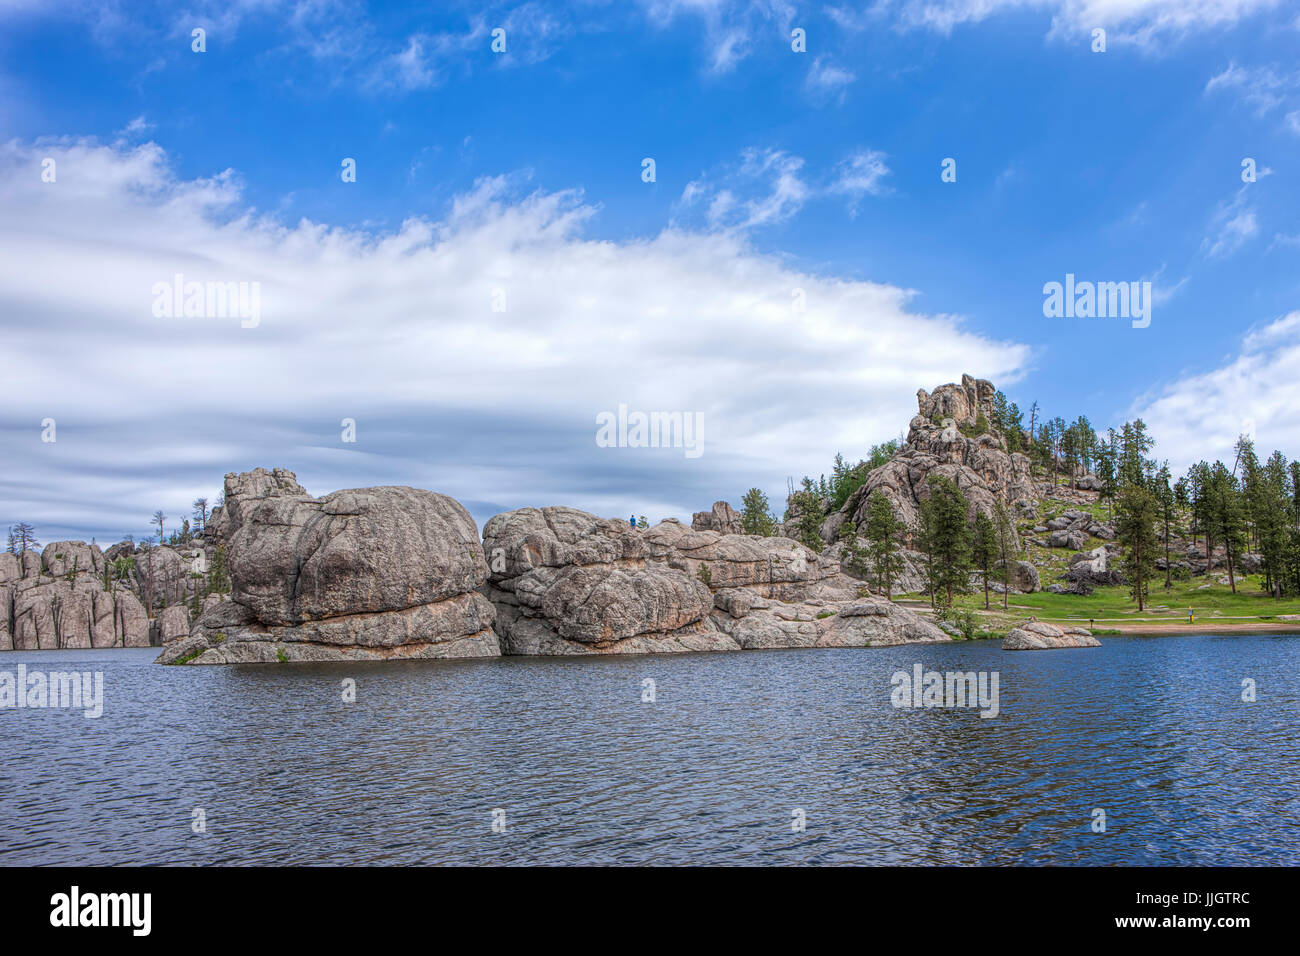 The rocky landscape surrounding the famous Sylvan Lake near Custer, South Dakota. - Stock Image